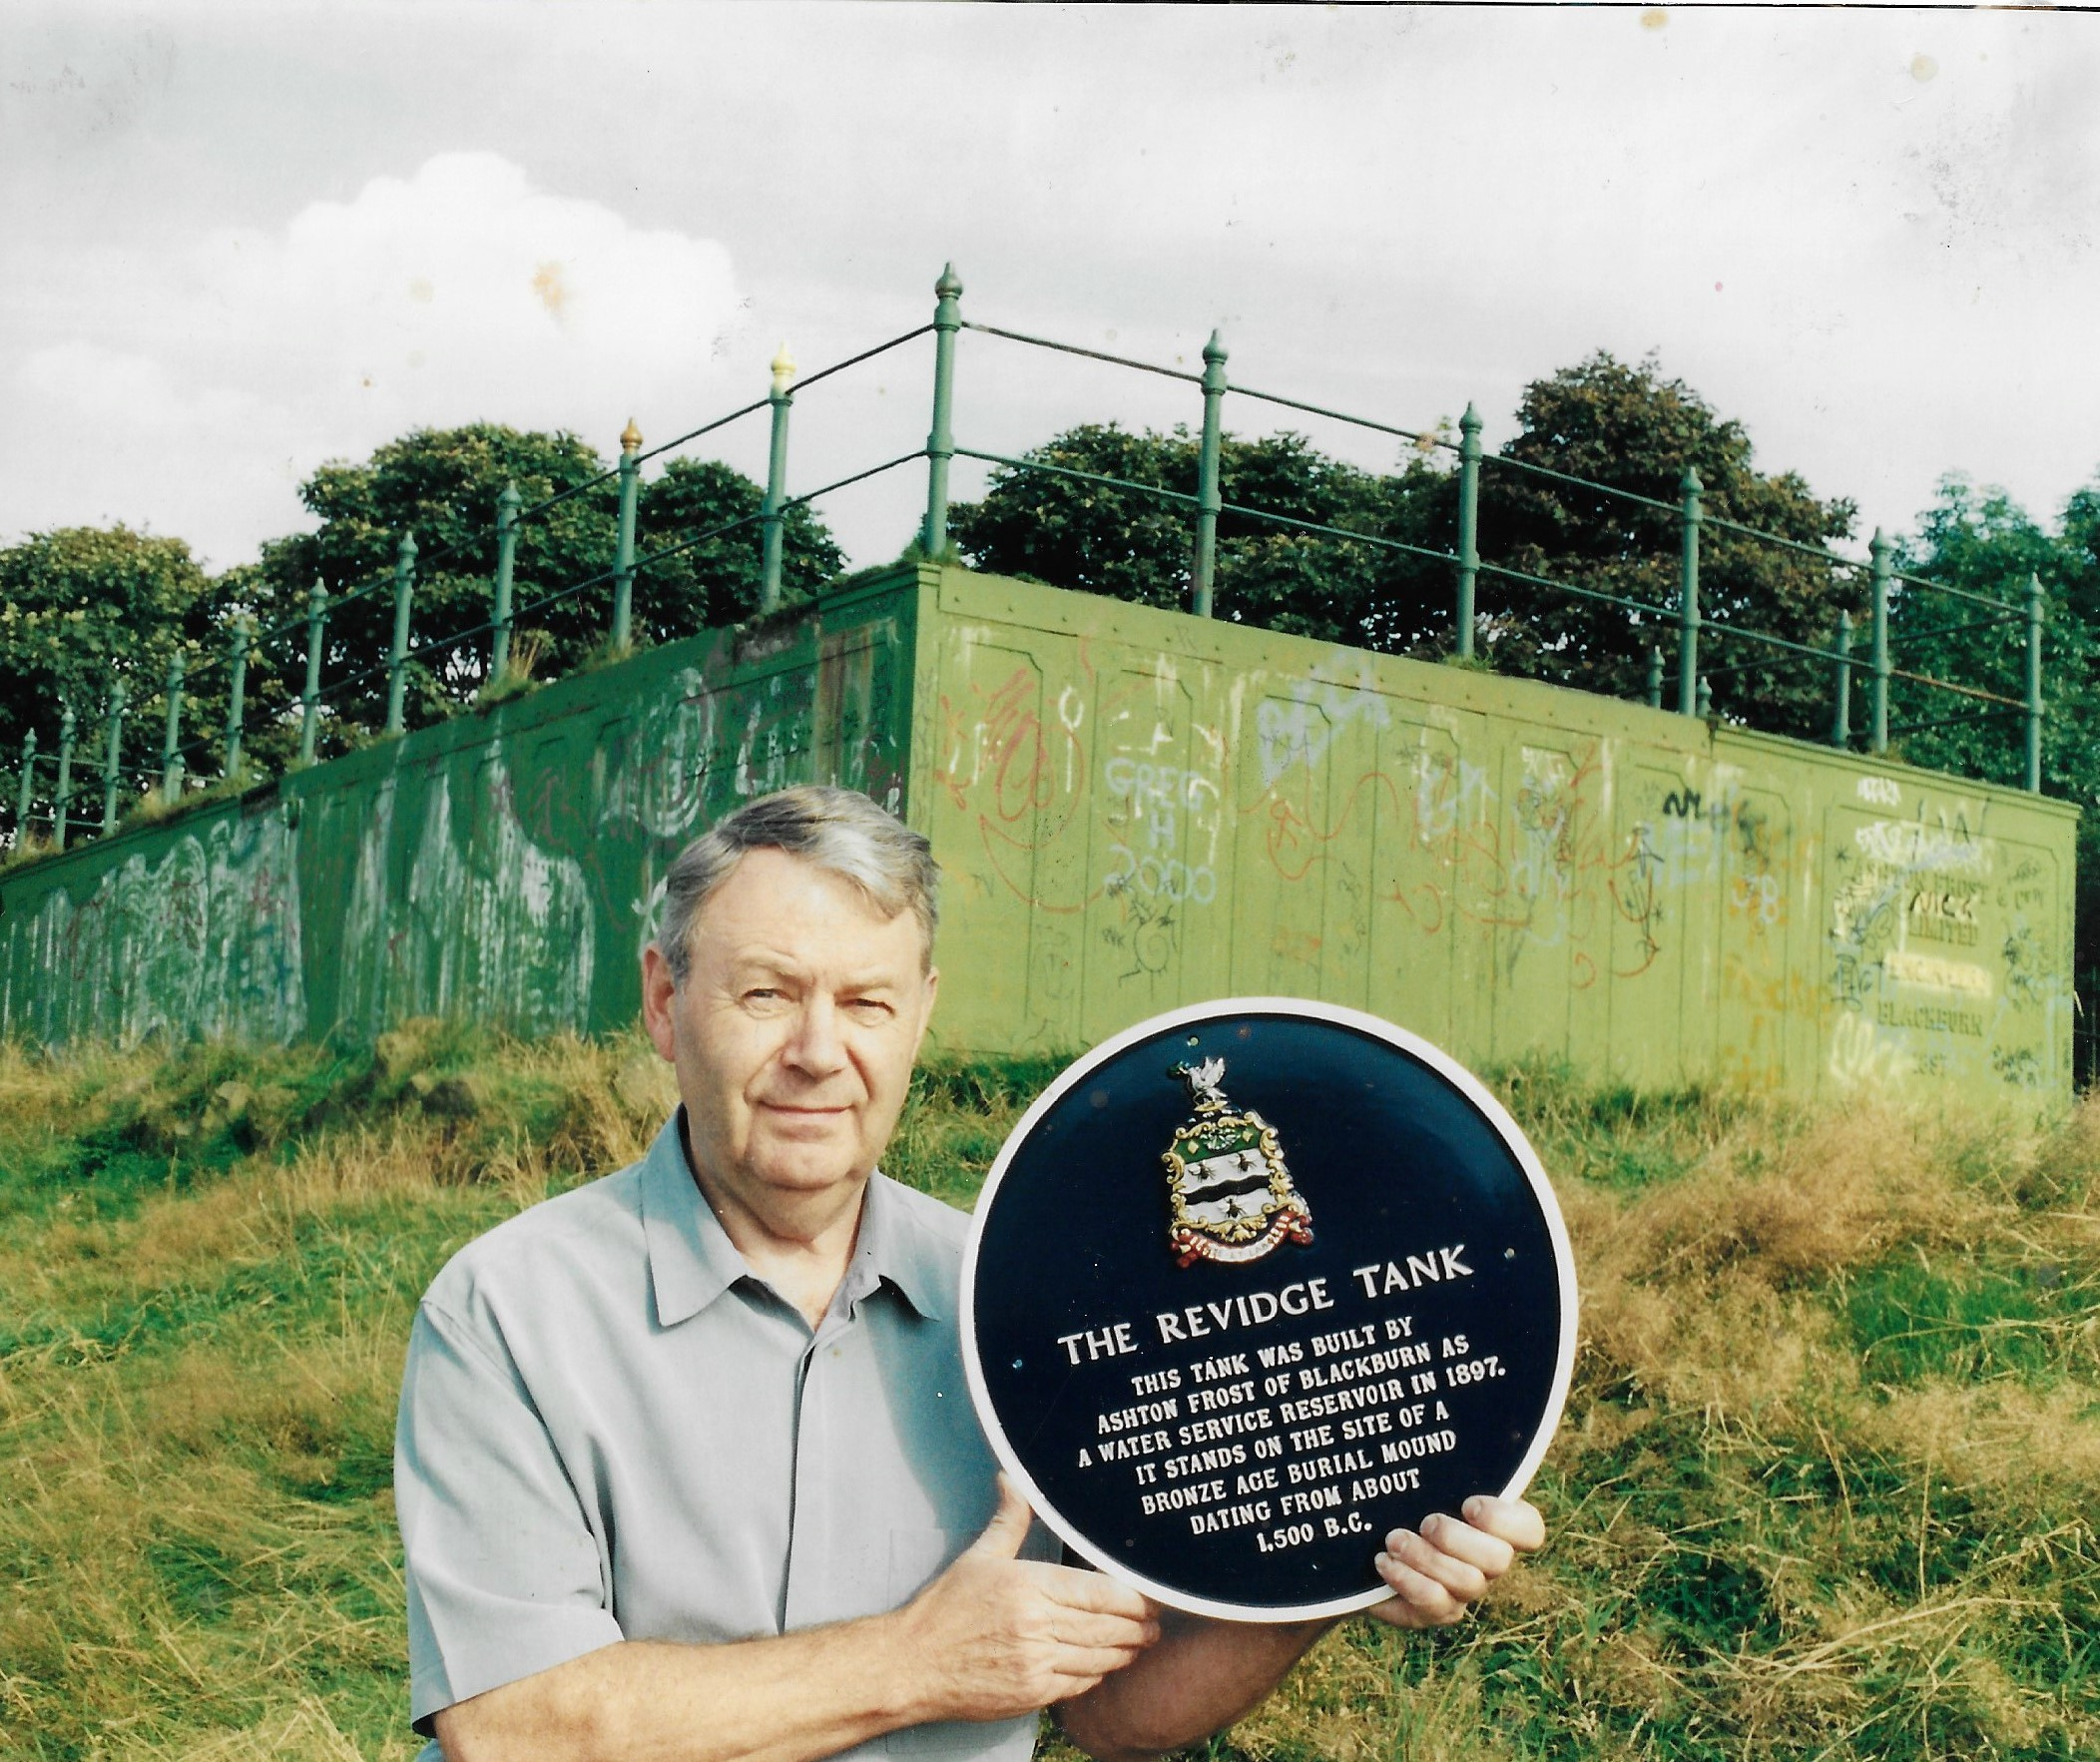 Remembering the Revidge tank - for water not warfare